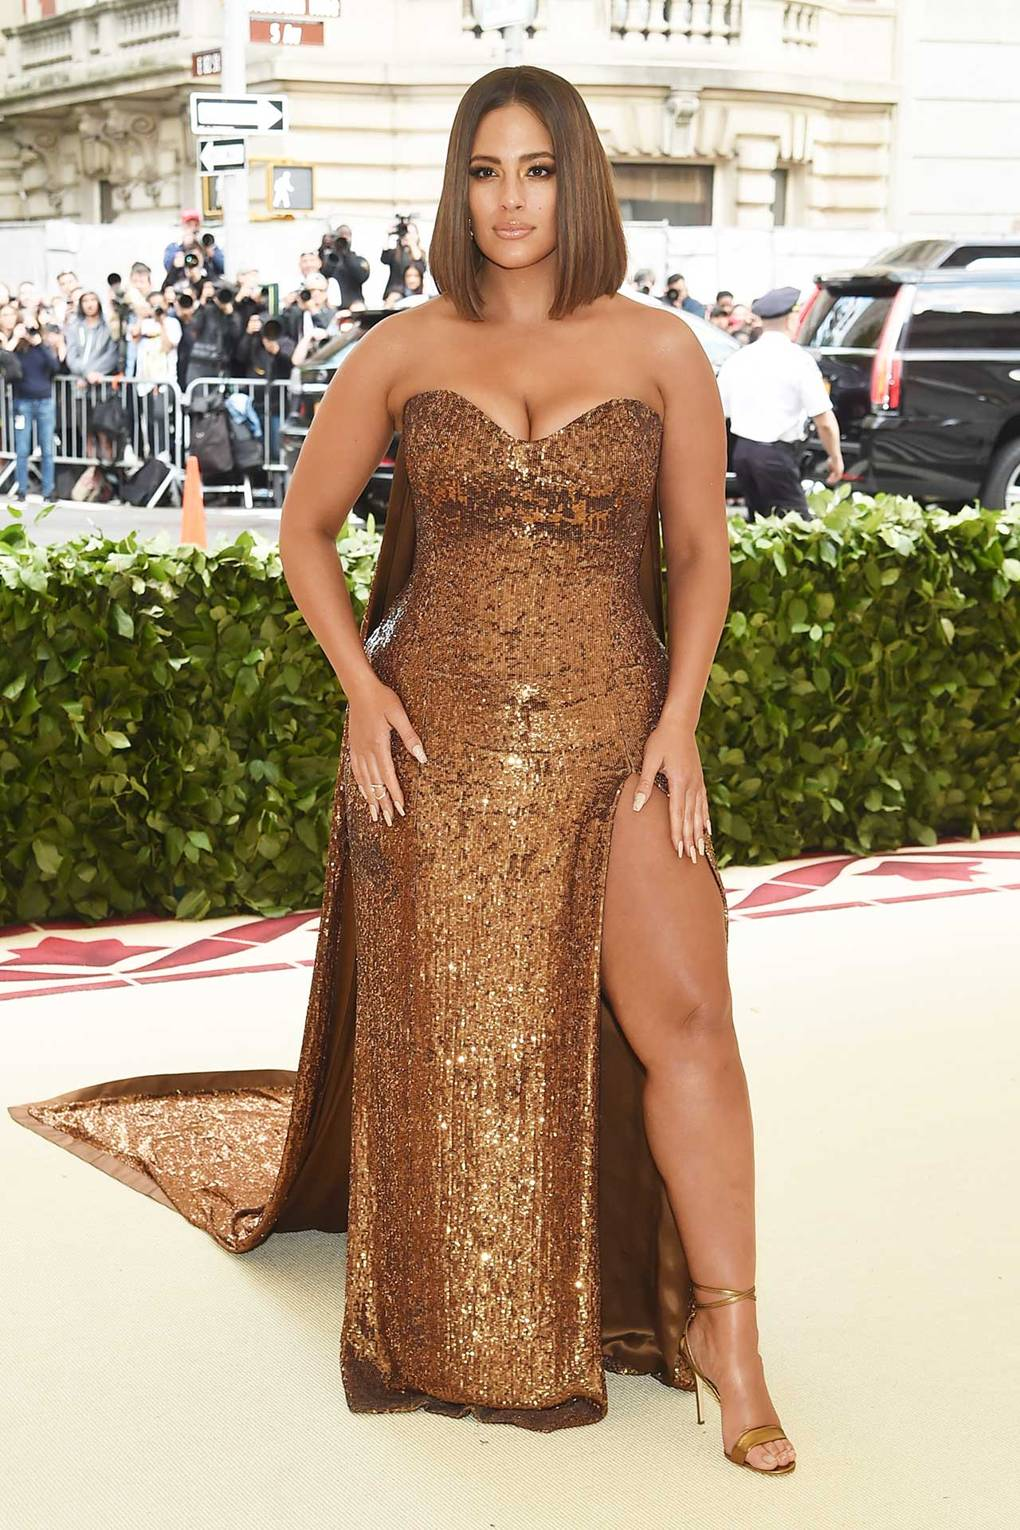 16. Ashley Graham